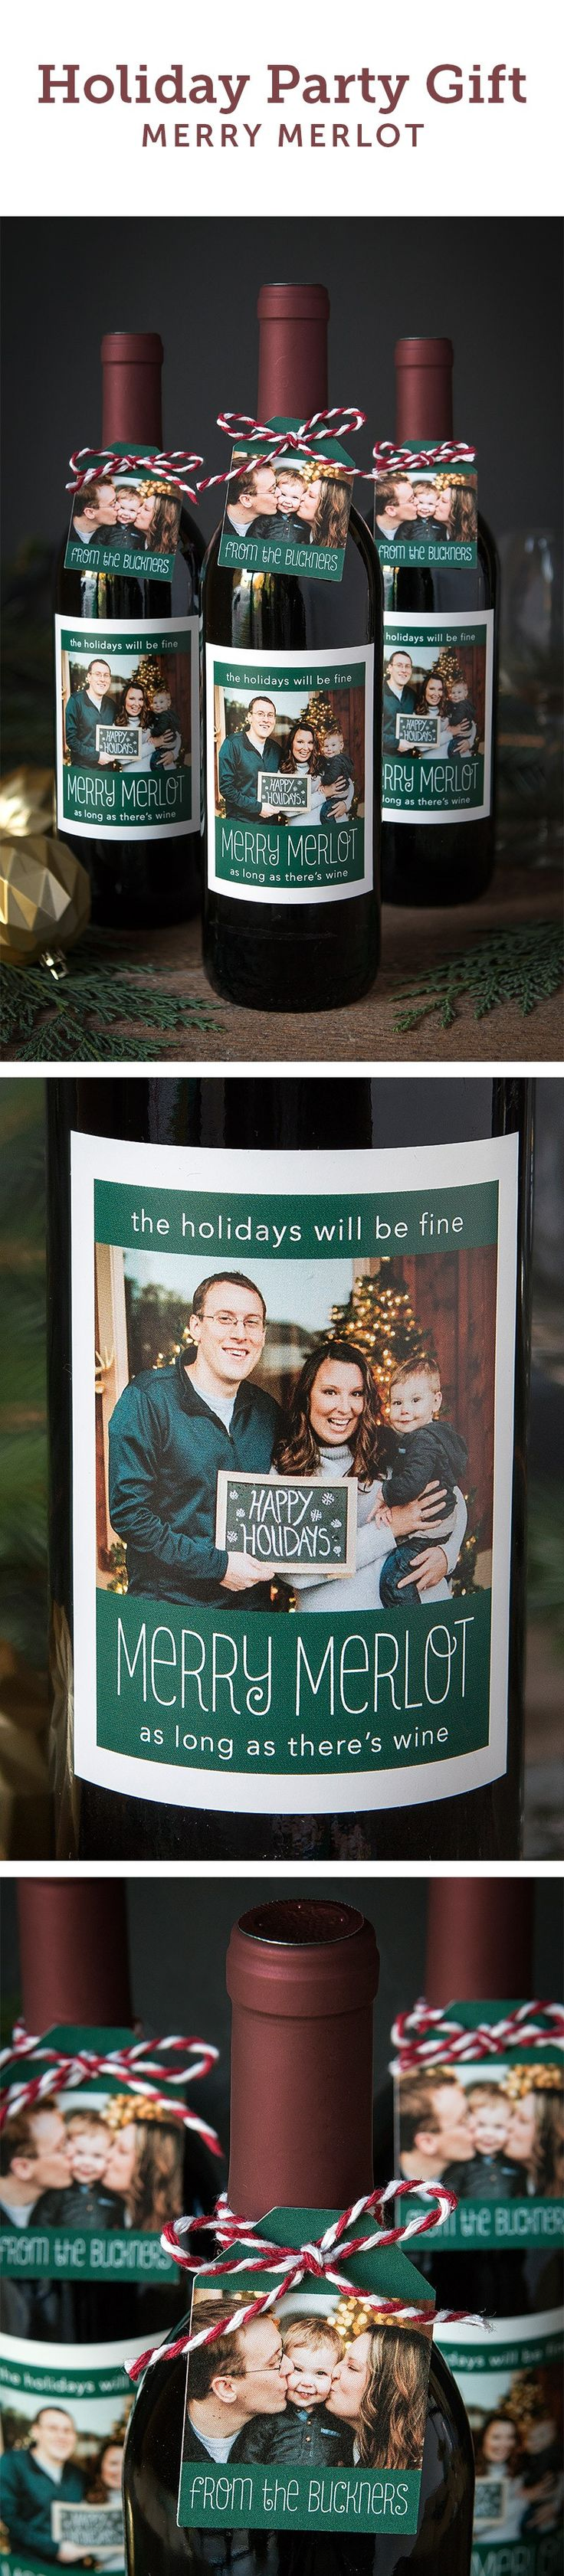 Personalize bottles of wine that your friends and family will love. Perfect for any holiday party!  Customize your labels at https://www.evermine.com/holiday_wine-labels/. There are hundreds of styles and colors to choose from, so you can pick one that fits your personality. You can order tags as well from https://www.evermine.com/holiday_gift-tags/. Include your holiday family photos for a unique touch!